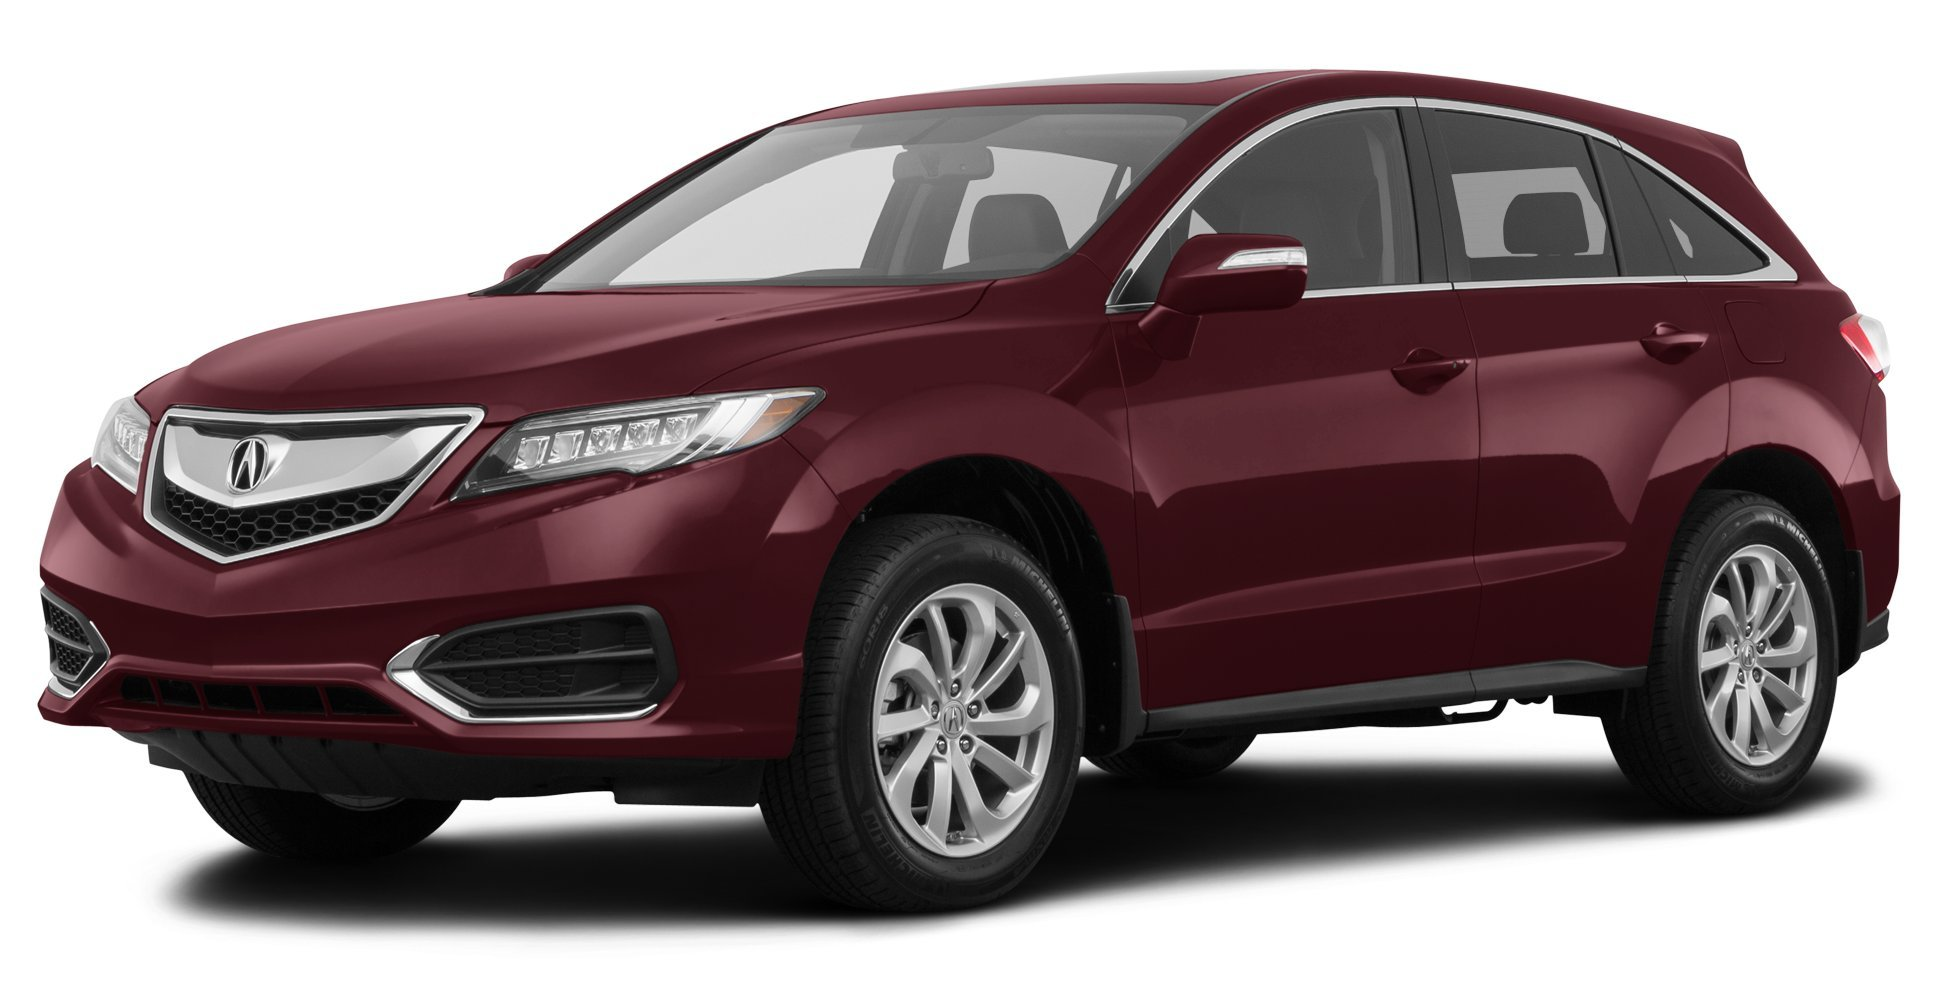 Amazoncom 2017 Acura RDX Reviews Images and Specs Vehicles